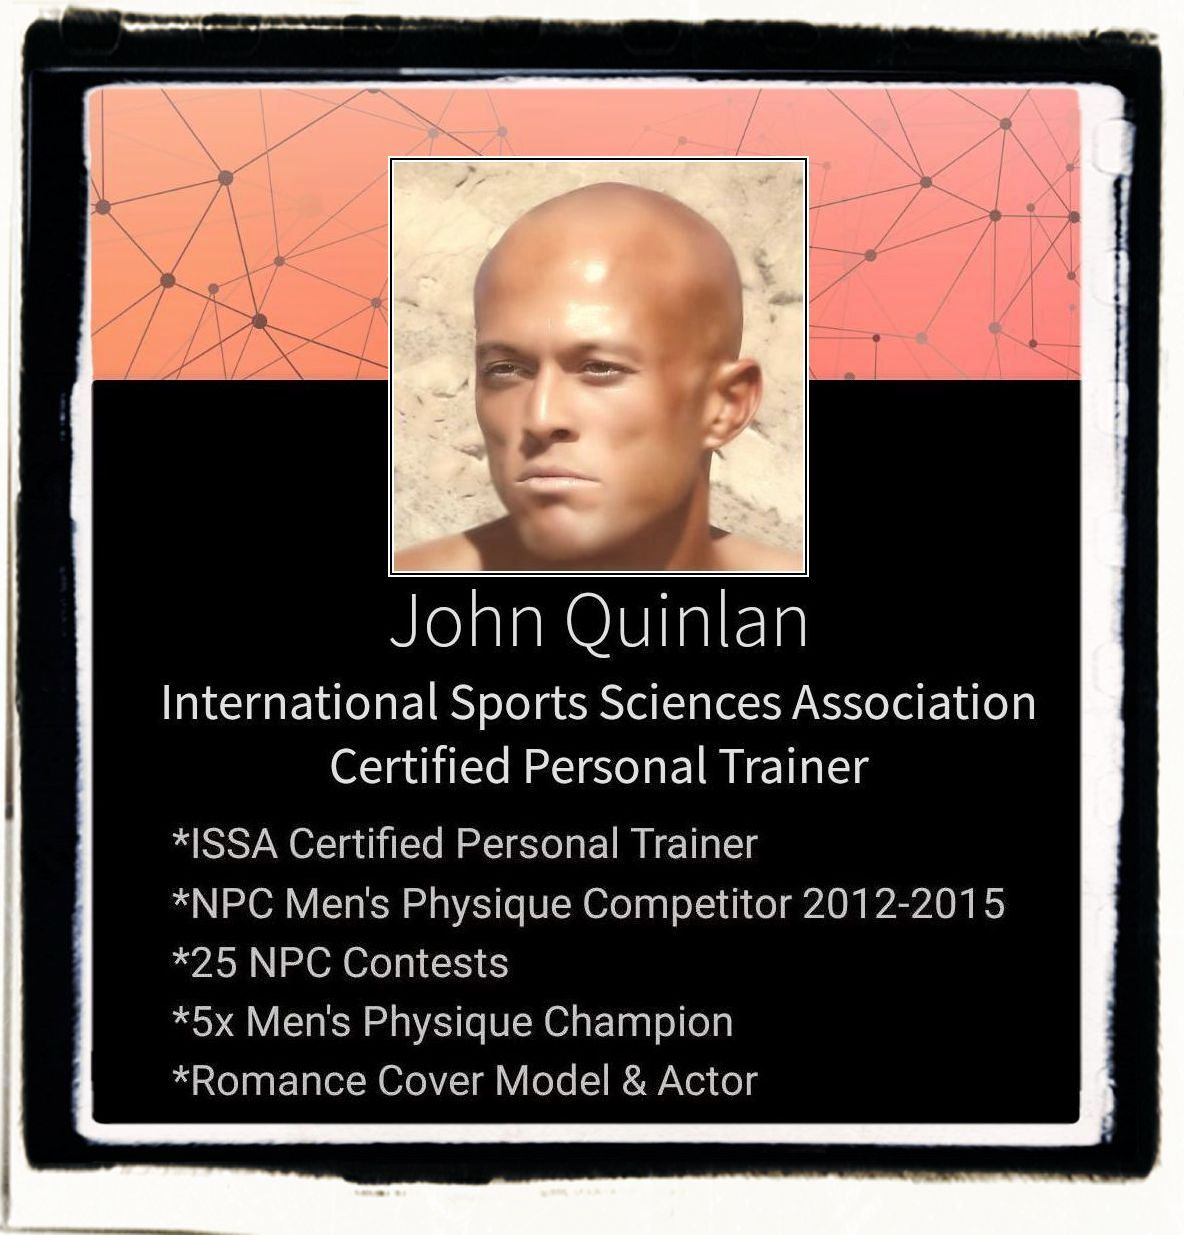 Tattooed Male Romance & Physique Model Actor John Joseph Quinlan Certified Personal Fitness Trainer #JohnQuinlan